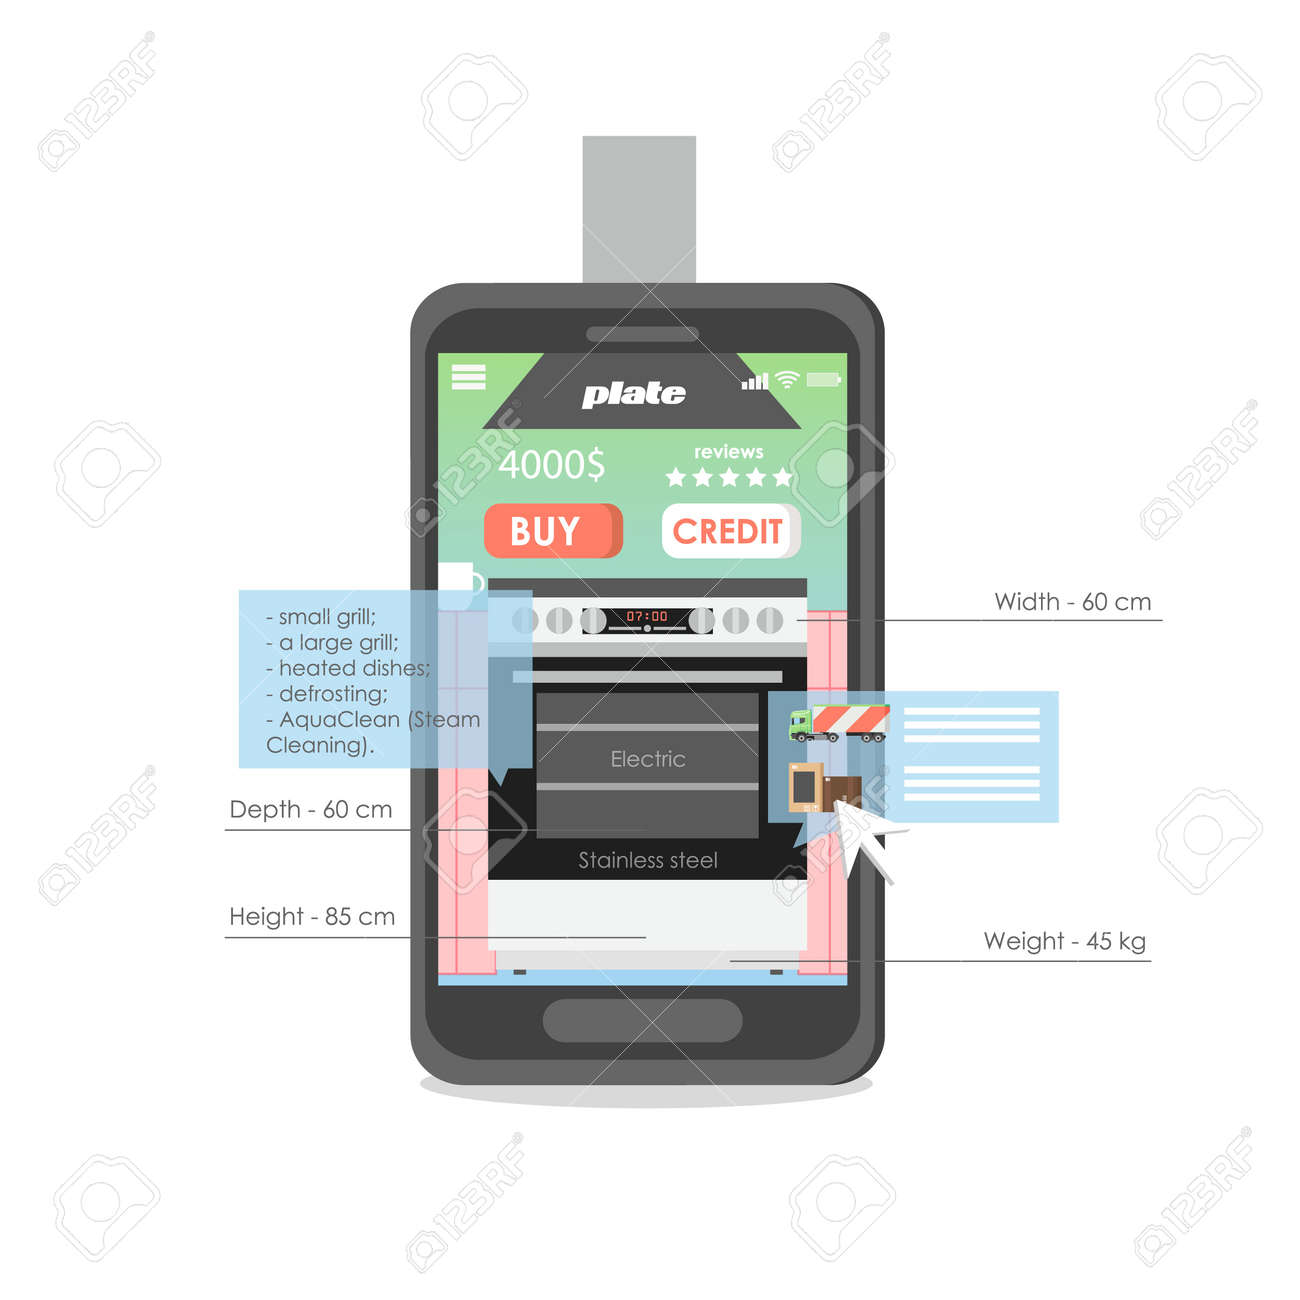 Mobile phone with electric cooker and oven on screen, vector flat illustration. Kitchen appliances store, home appliances online shopping. - 149559467